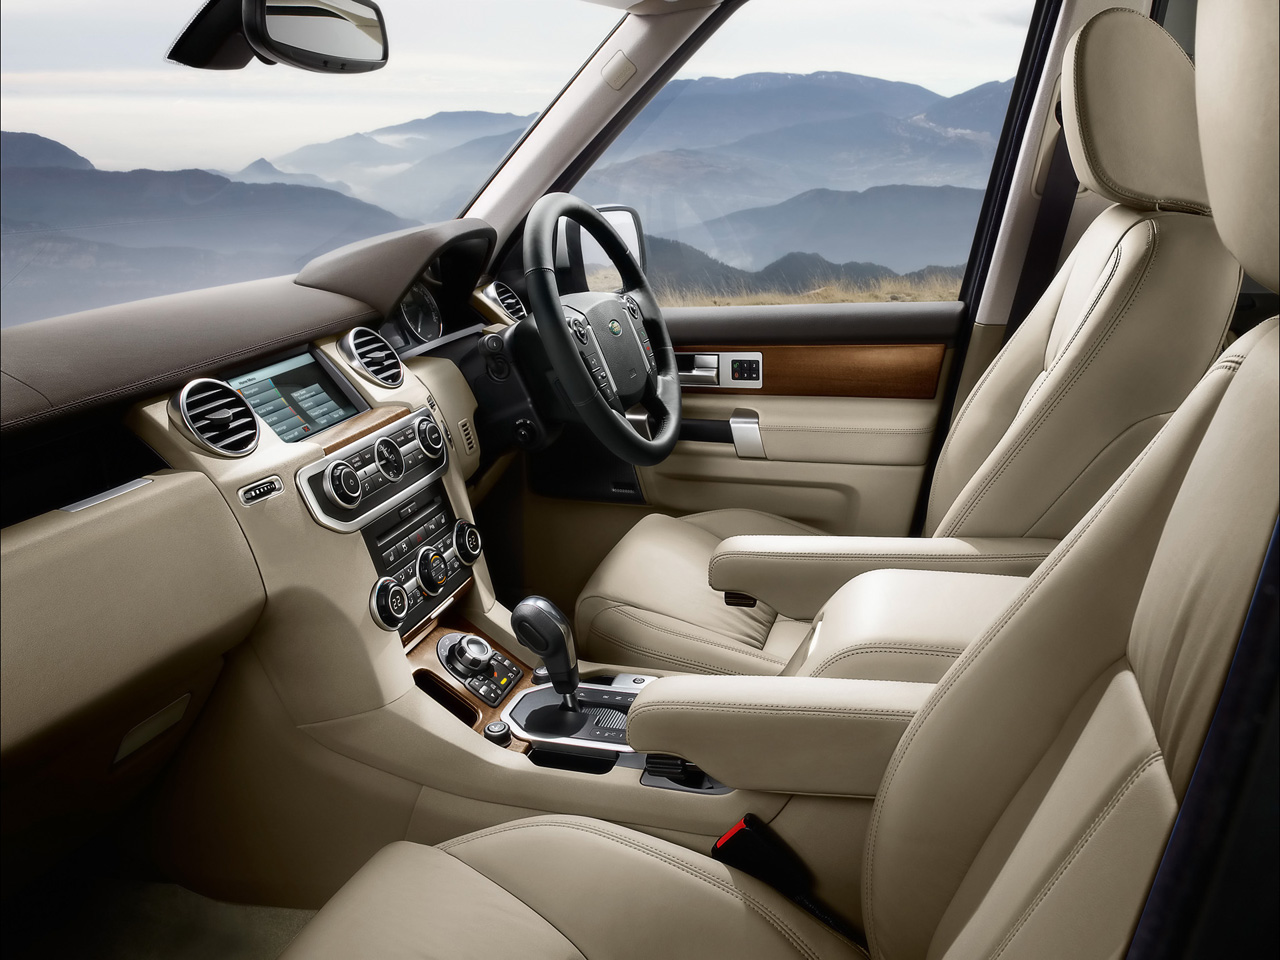 Land Rover Discovery interior #4